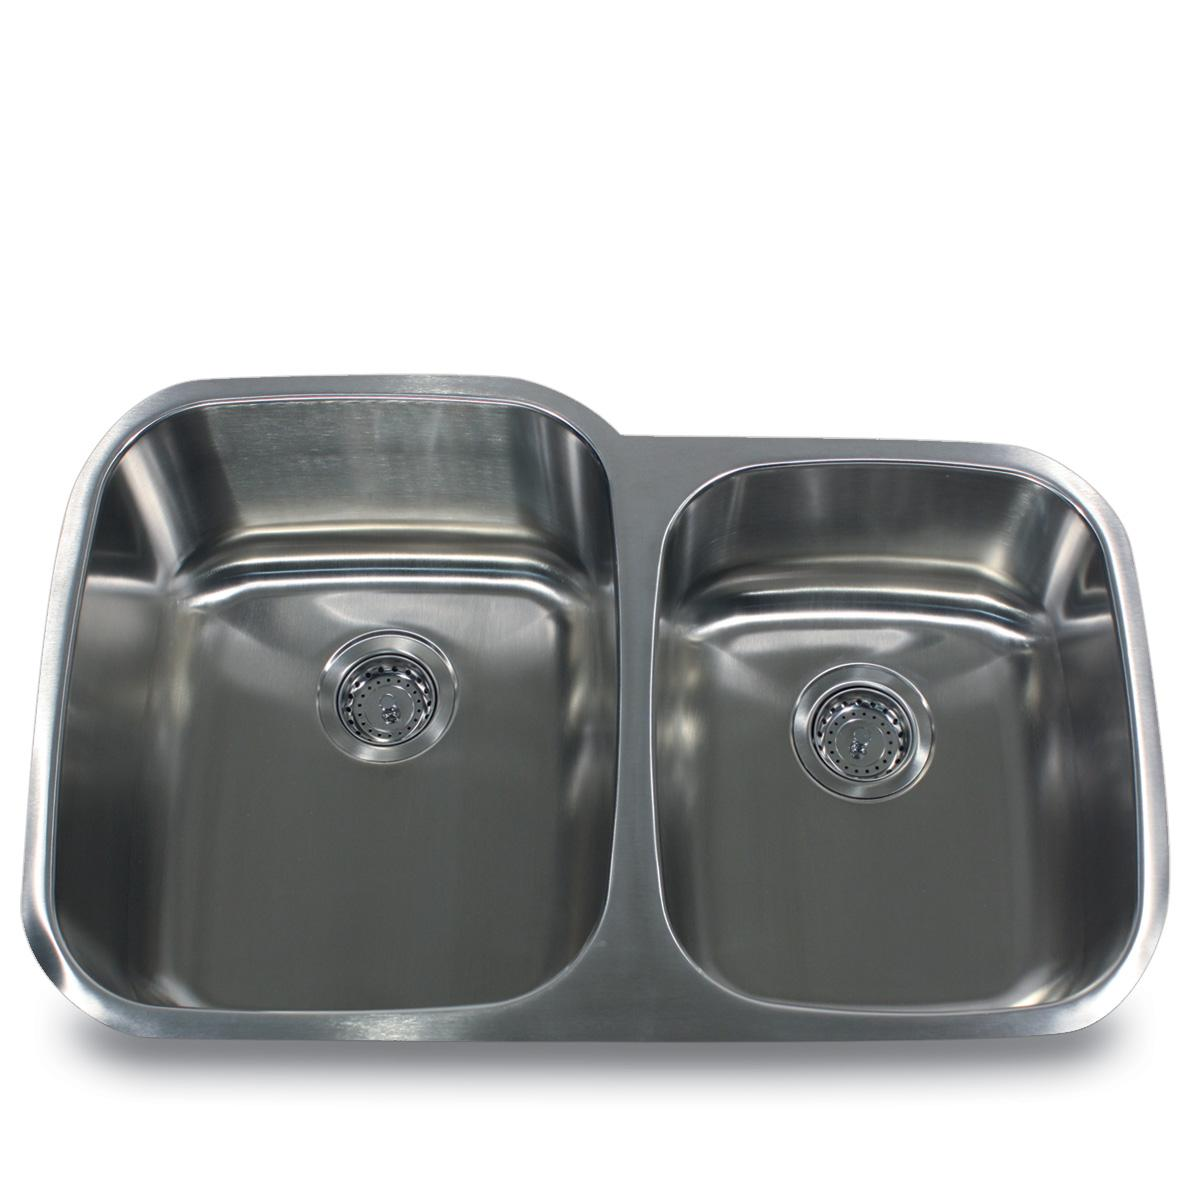 Double Bowl Stainless Steel Sink : Stainless Steel Offset Double Bowl Kitchen Sink - 13491707 - Overstock ...